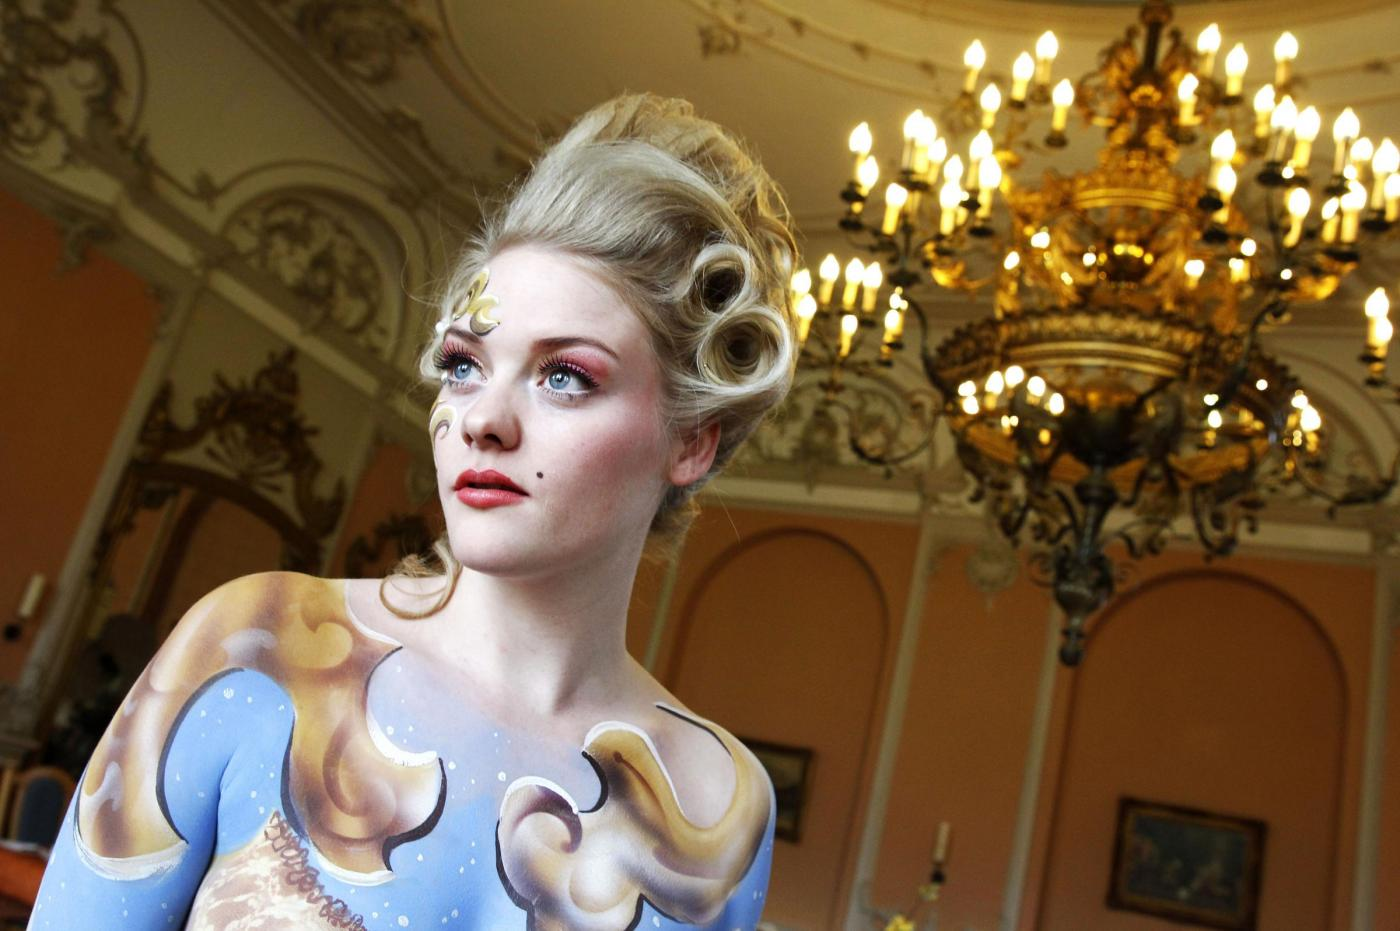 Germania, body painting in stile barocco1